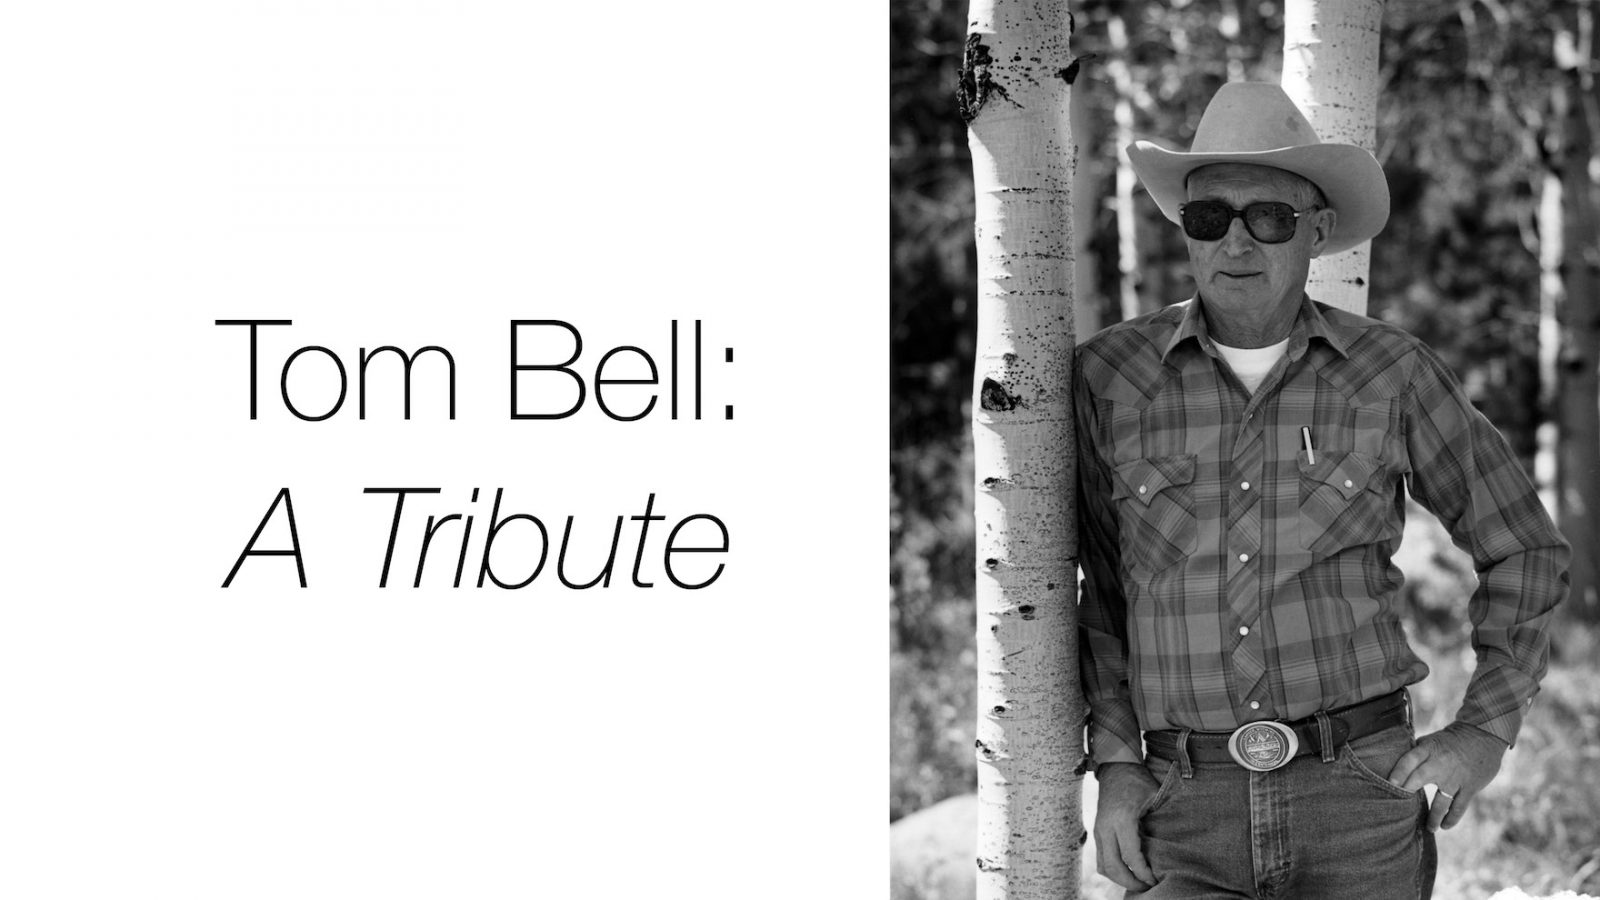 Tom Bell: A Tribute